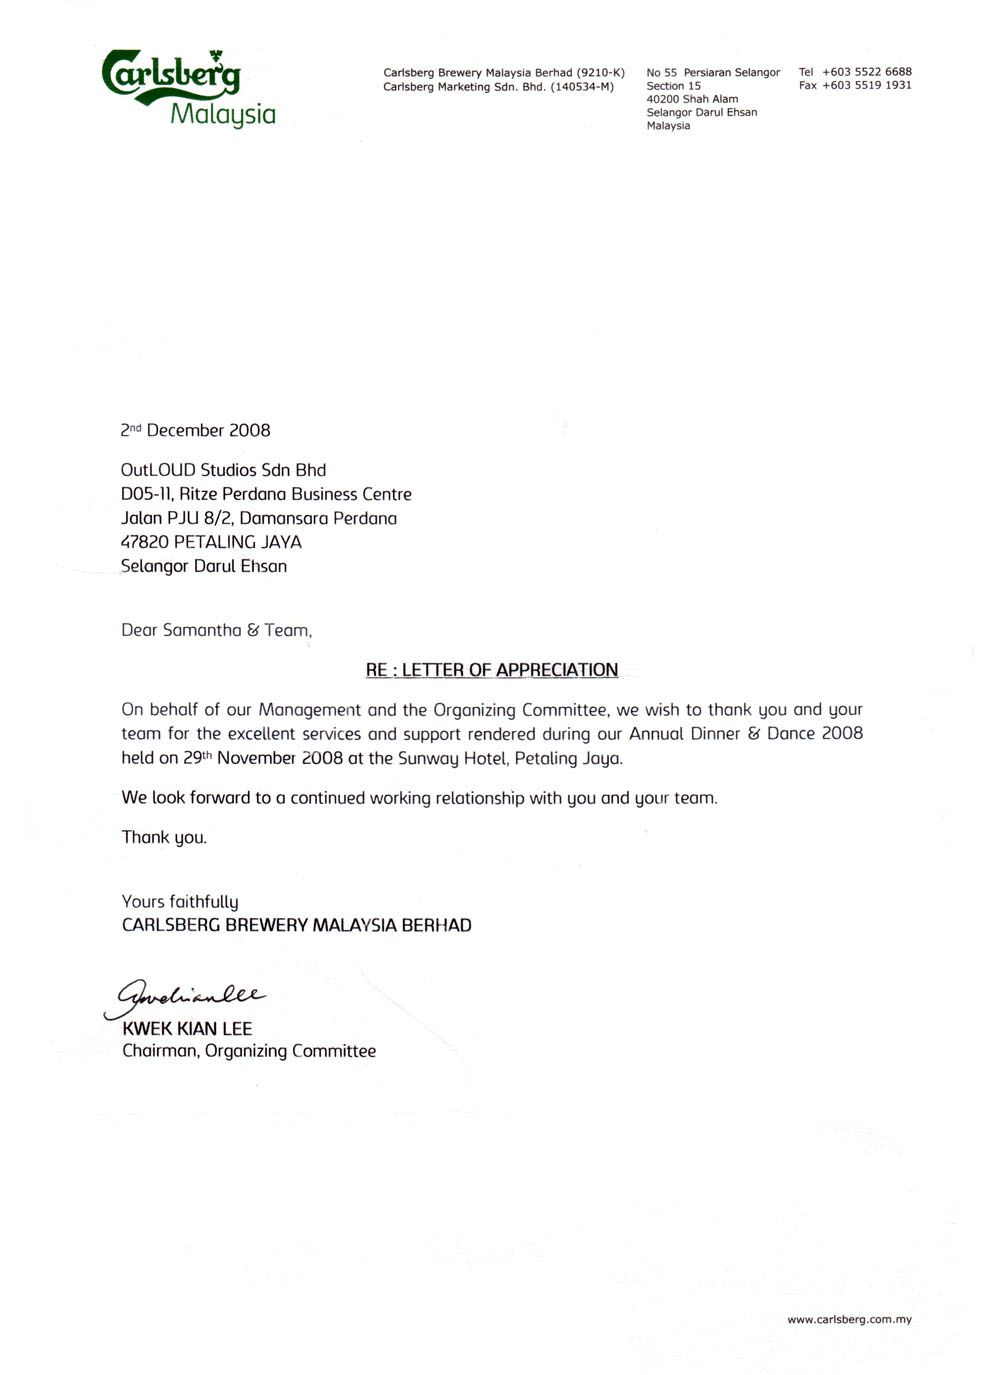 Appreciation Letter Boss Free Amp Resume Thank You Church Sample For Sponsorship Charity